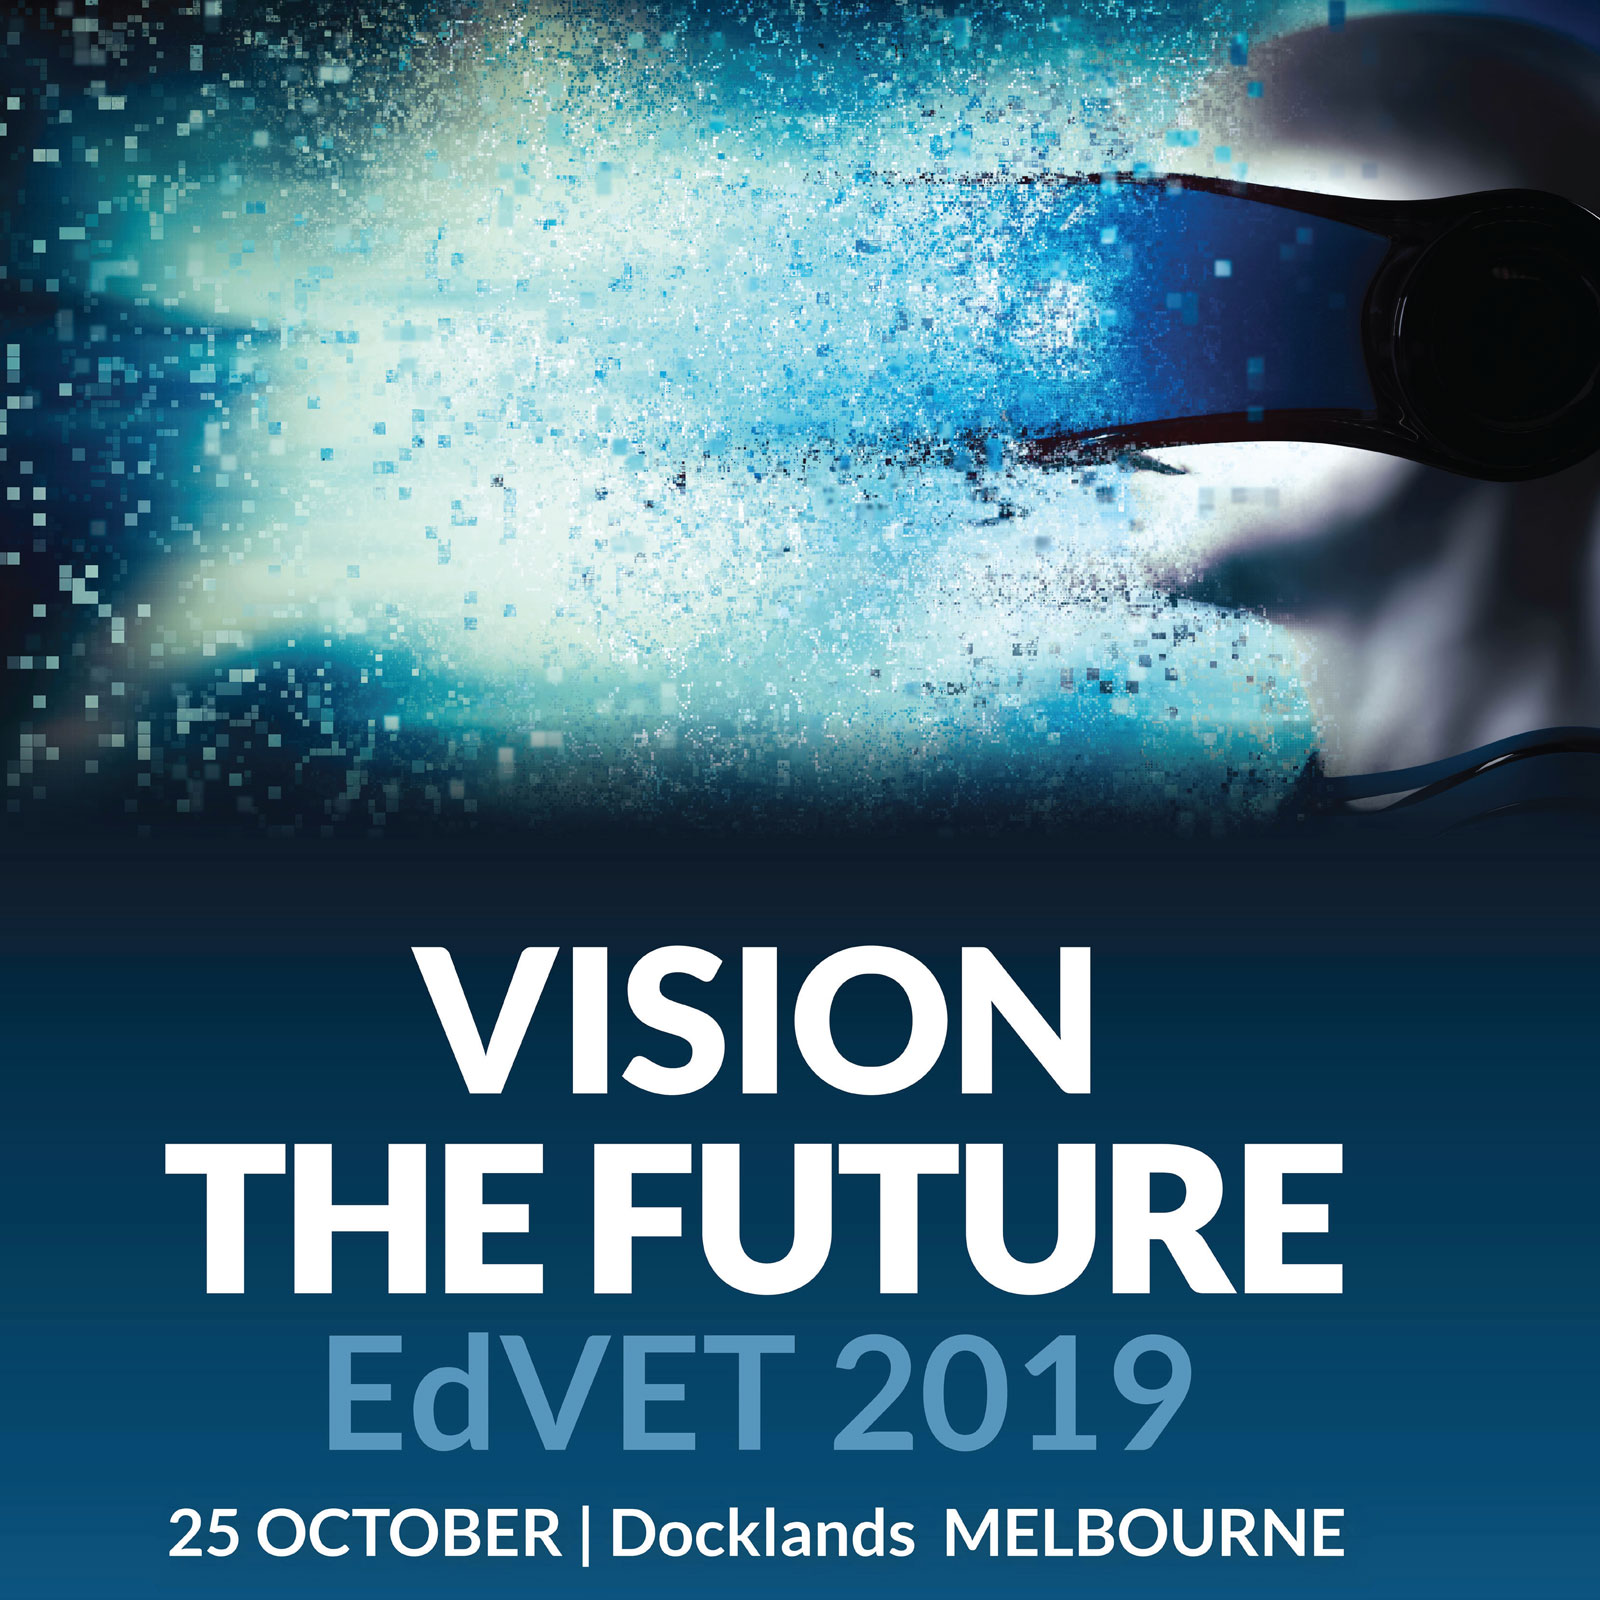 Vision The Future - Edvet Conference